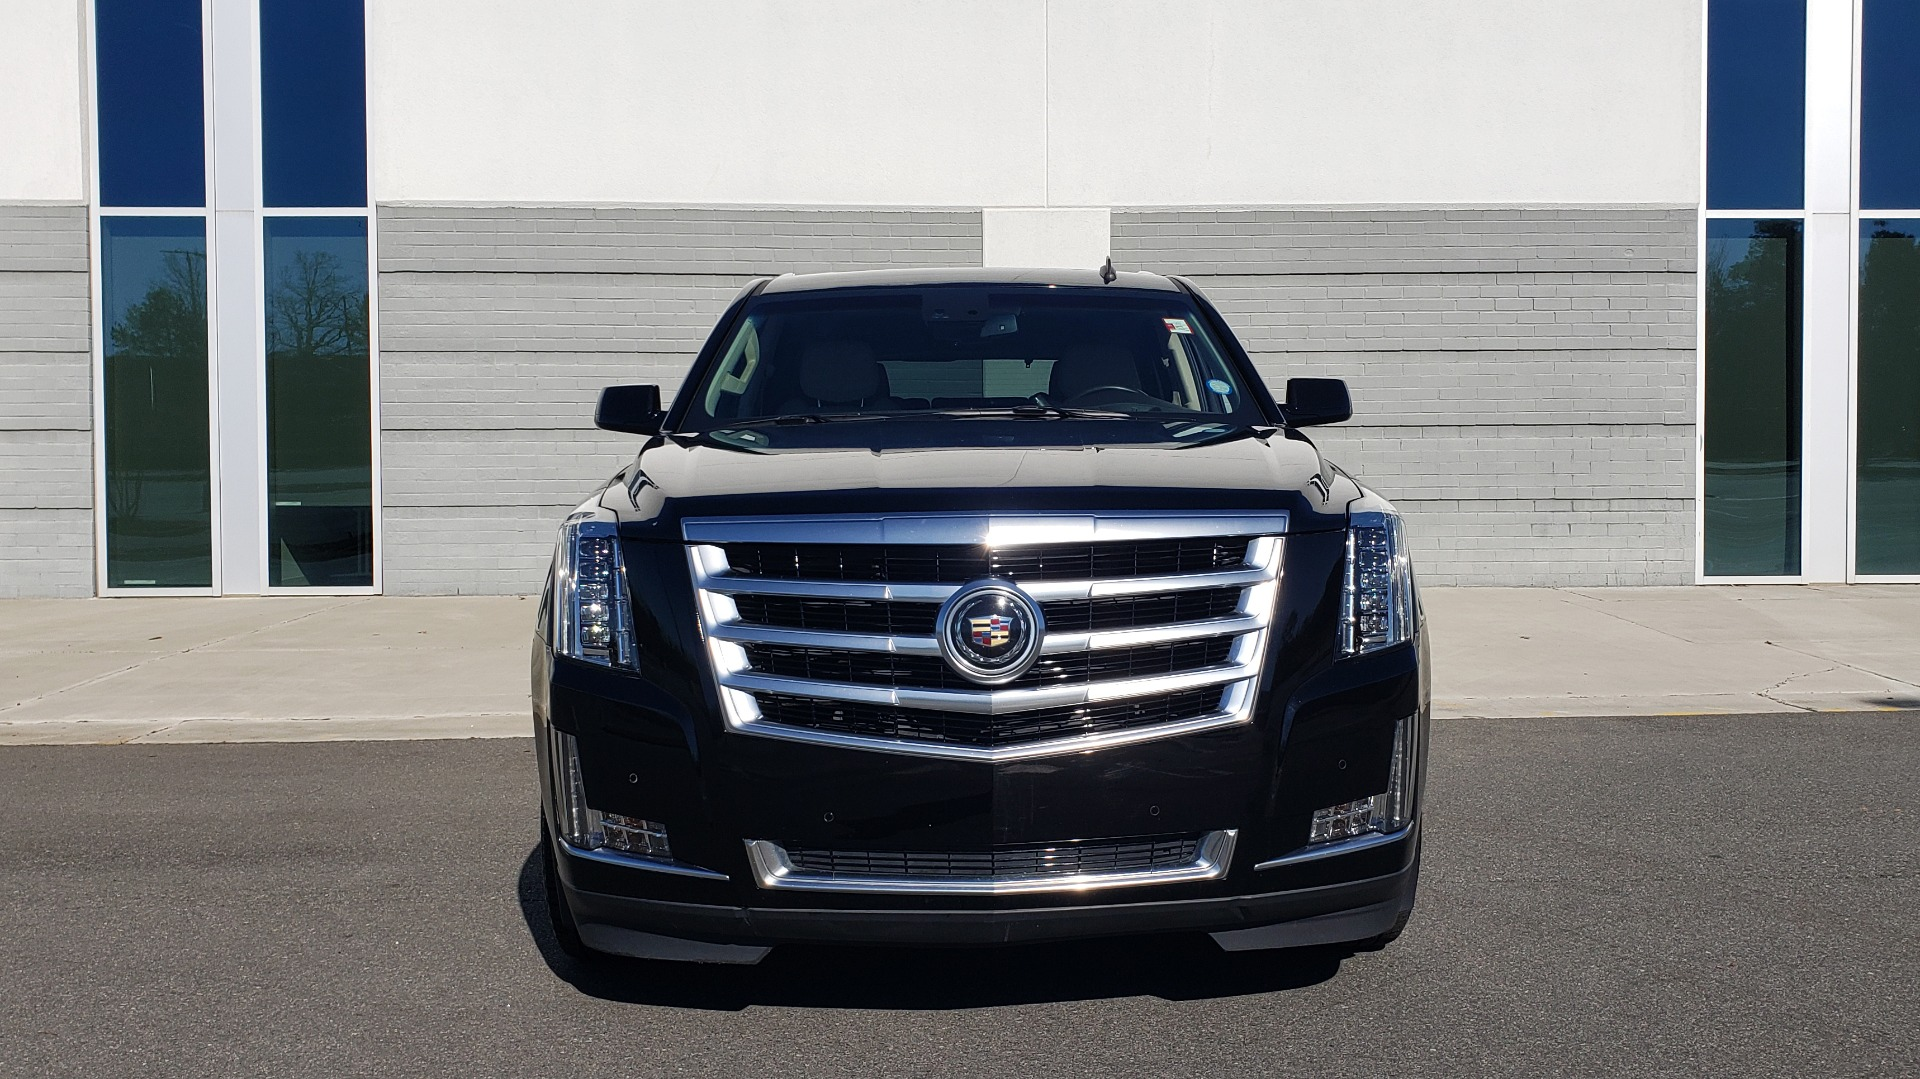 Used 2015 Cadillac ESCALADE PREMIUM 4WD / NAV / SUNROOF / REARVIEW / 3-ROW for sale Sold at Formula Imports in Charlotte NC 28227 24